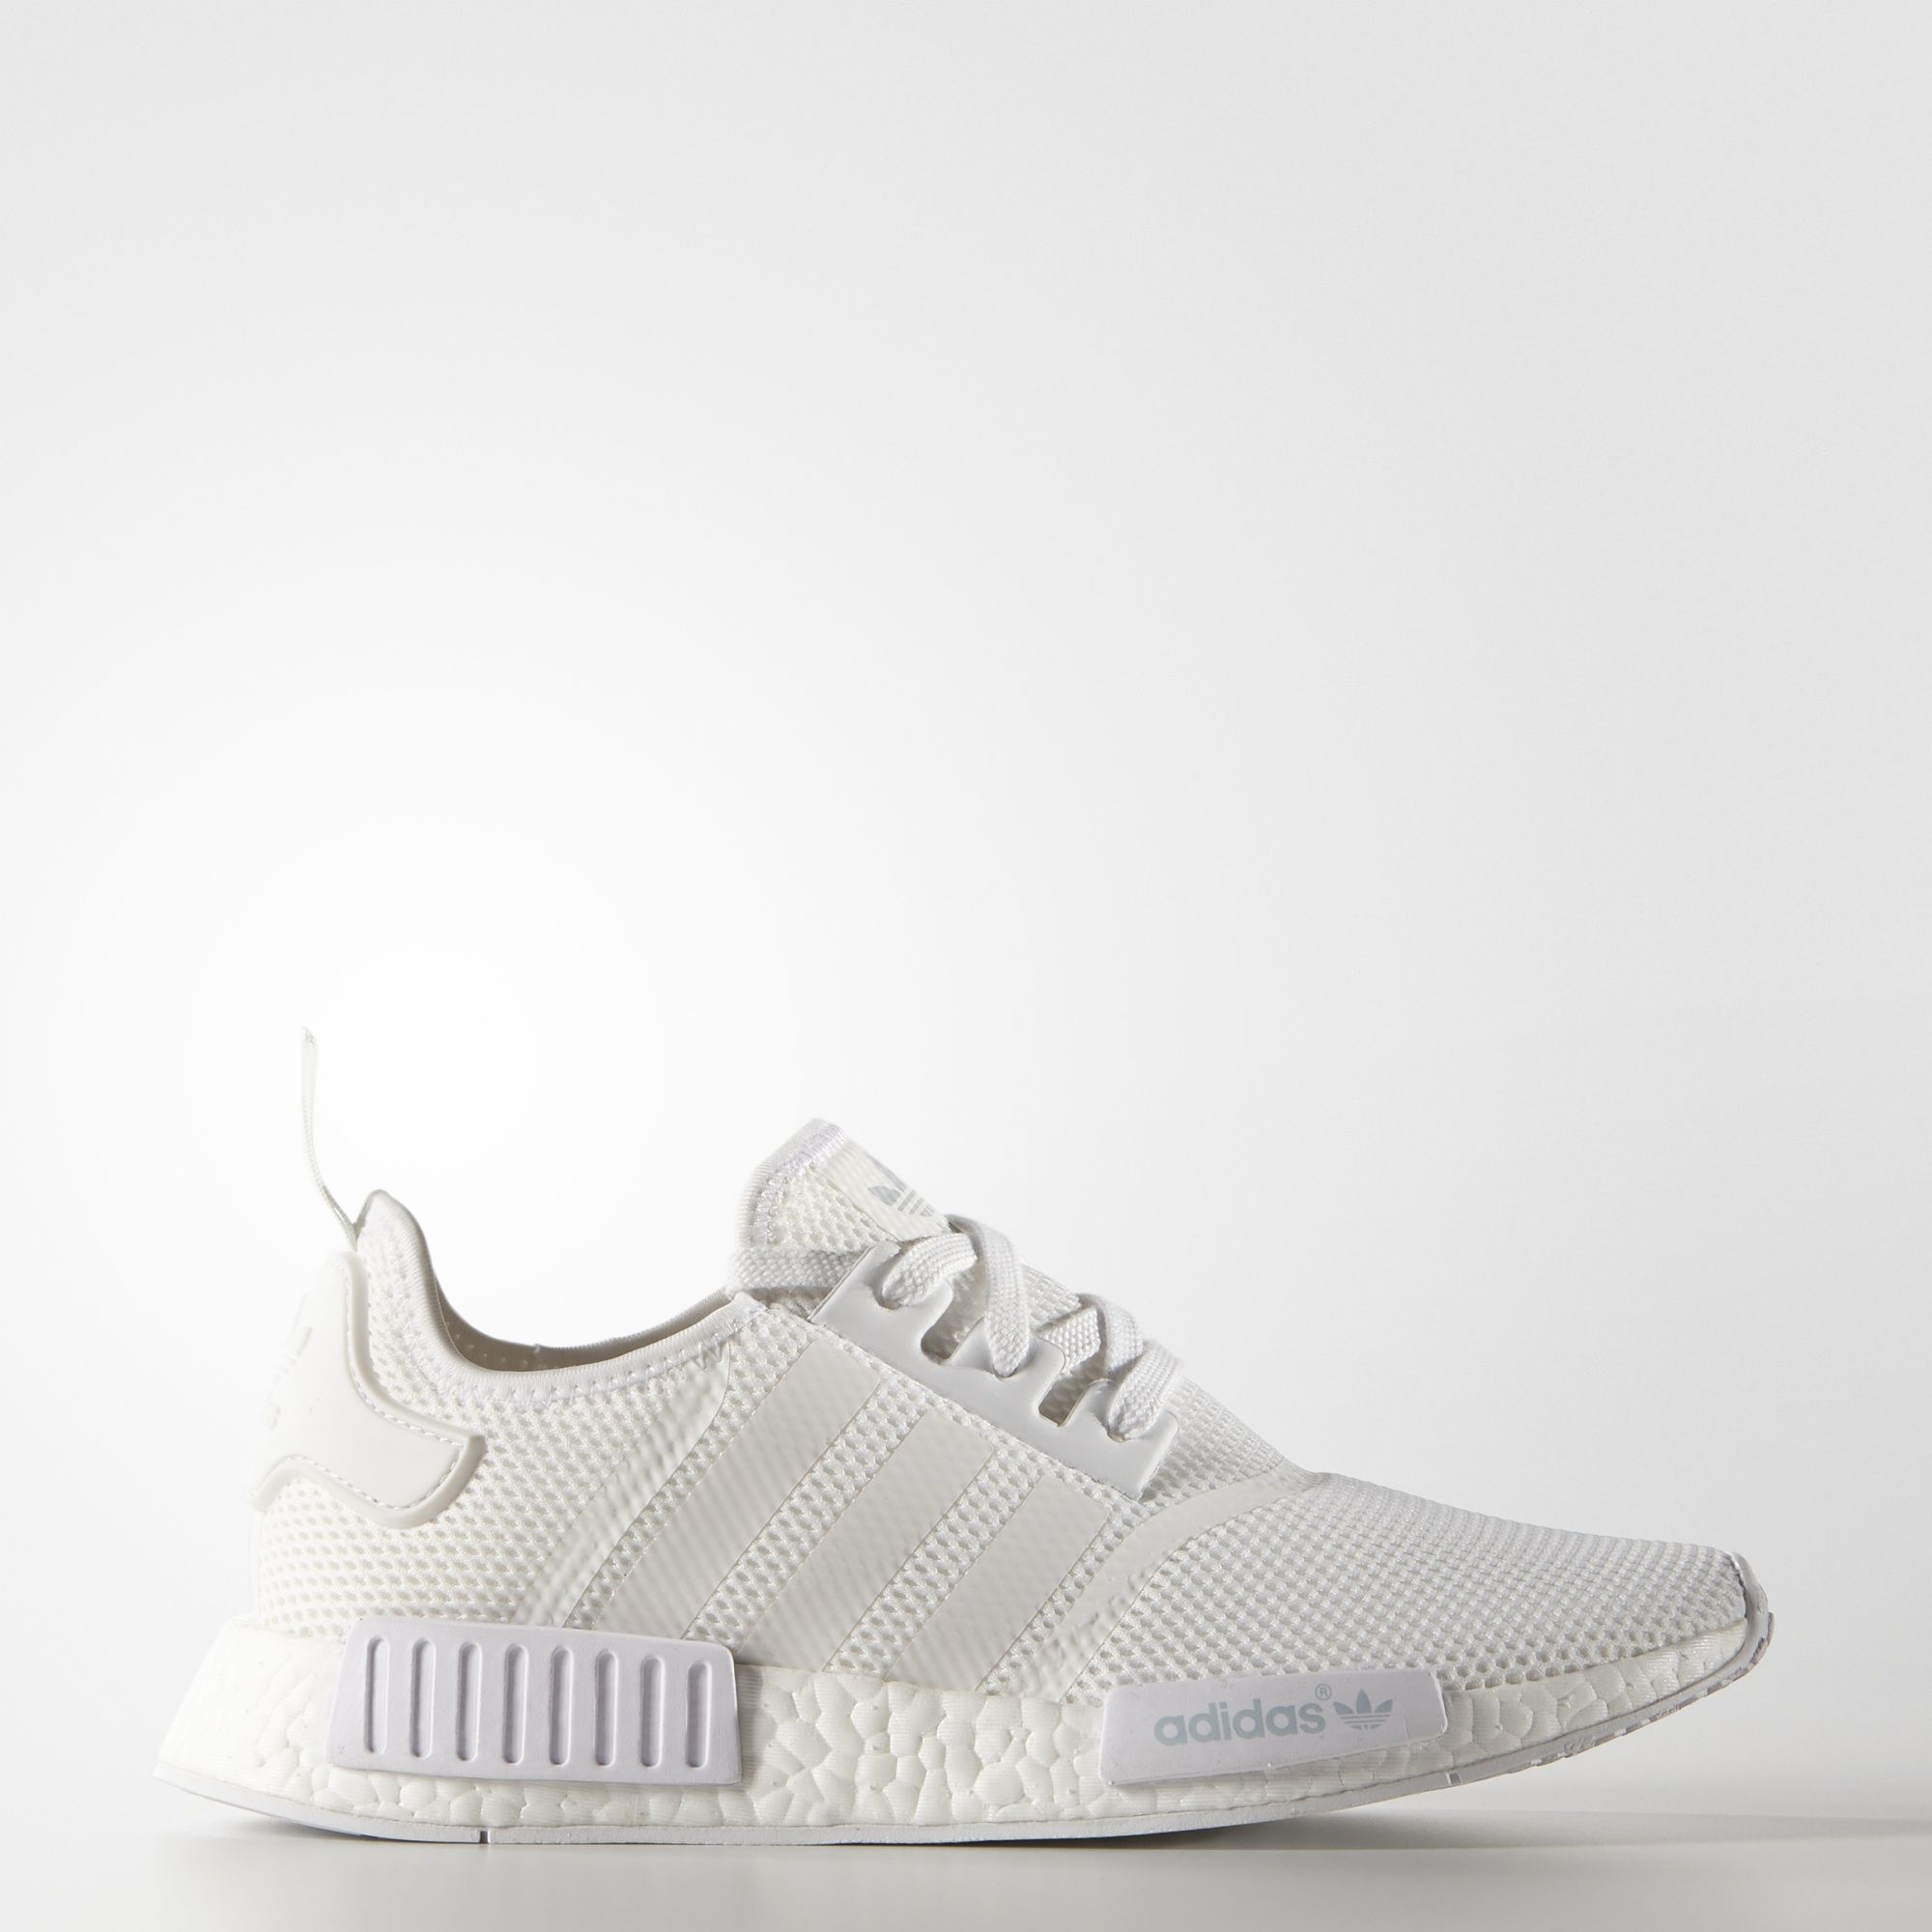 adidas - Men's NMD_R1 Shoes